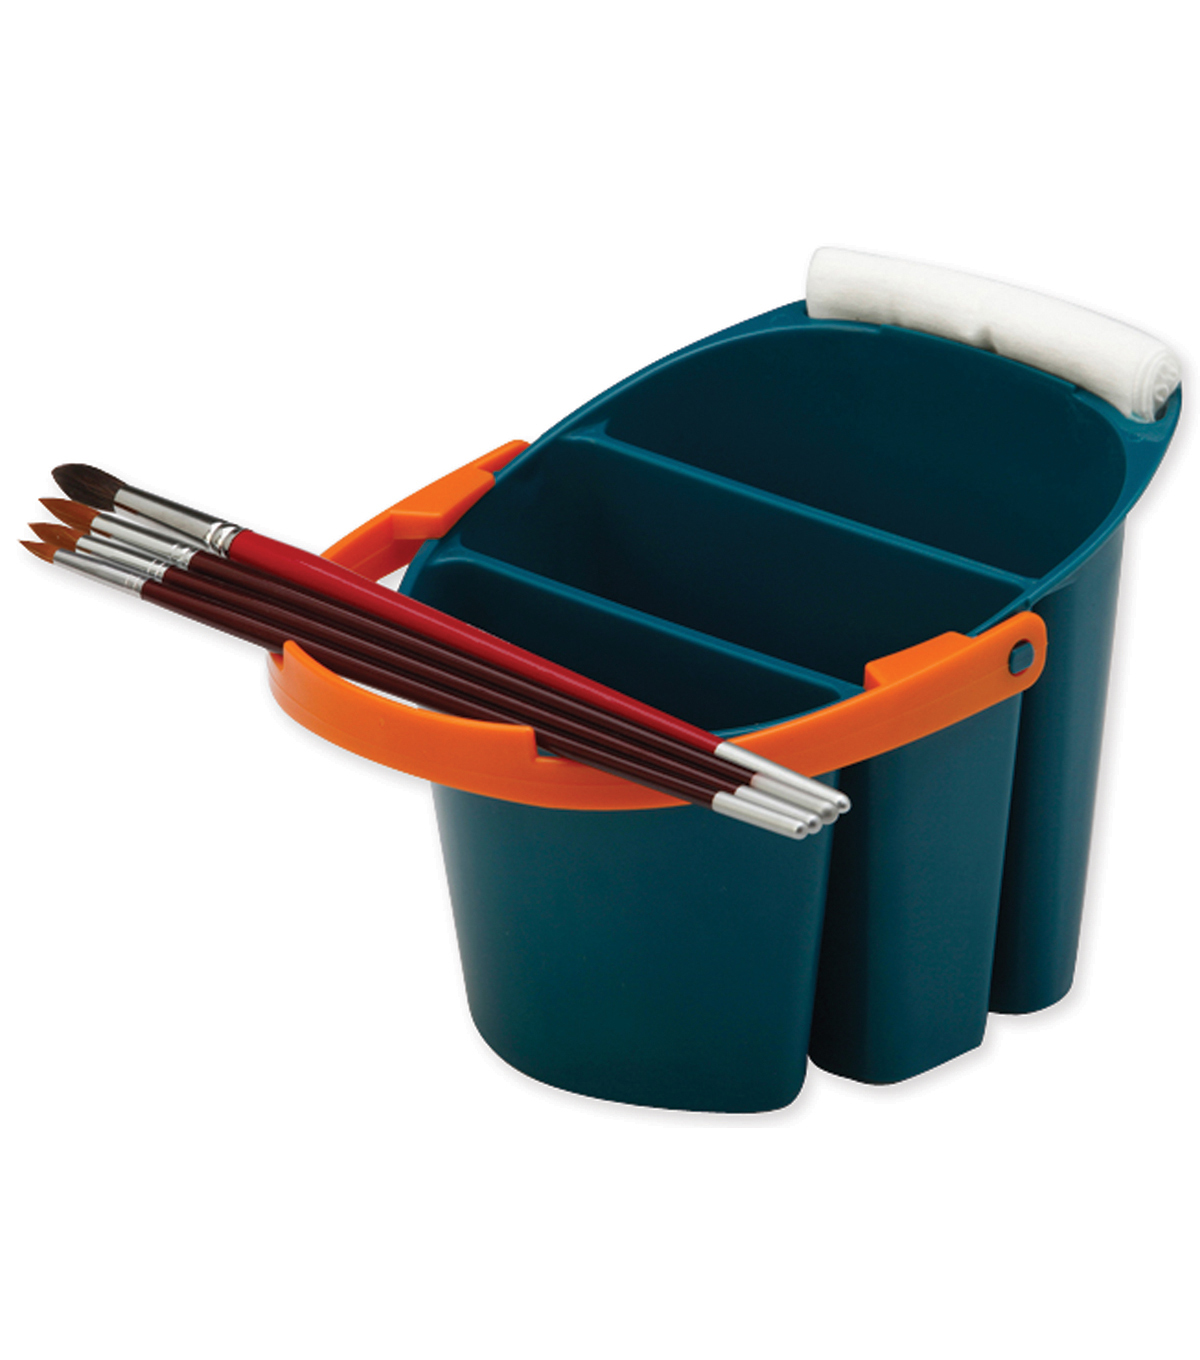 Mijello Blue Artists Bucket 11.4\u0022X7.5\u0022X6.3\u0022-Holds 2 Liters